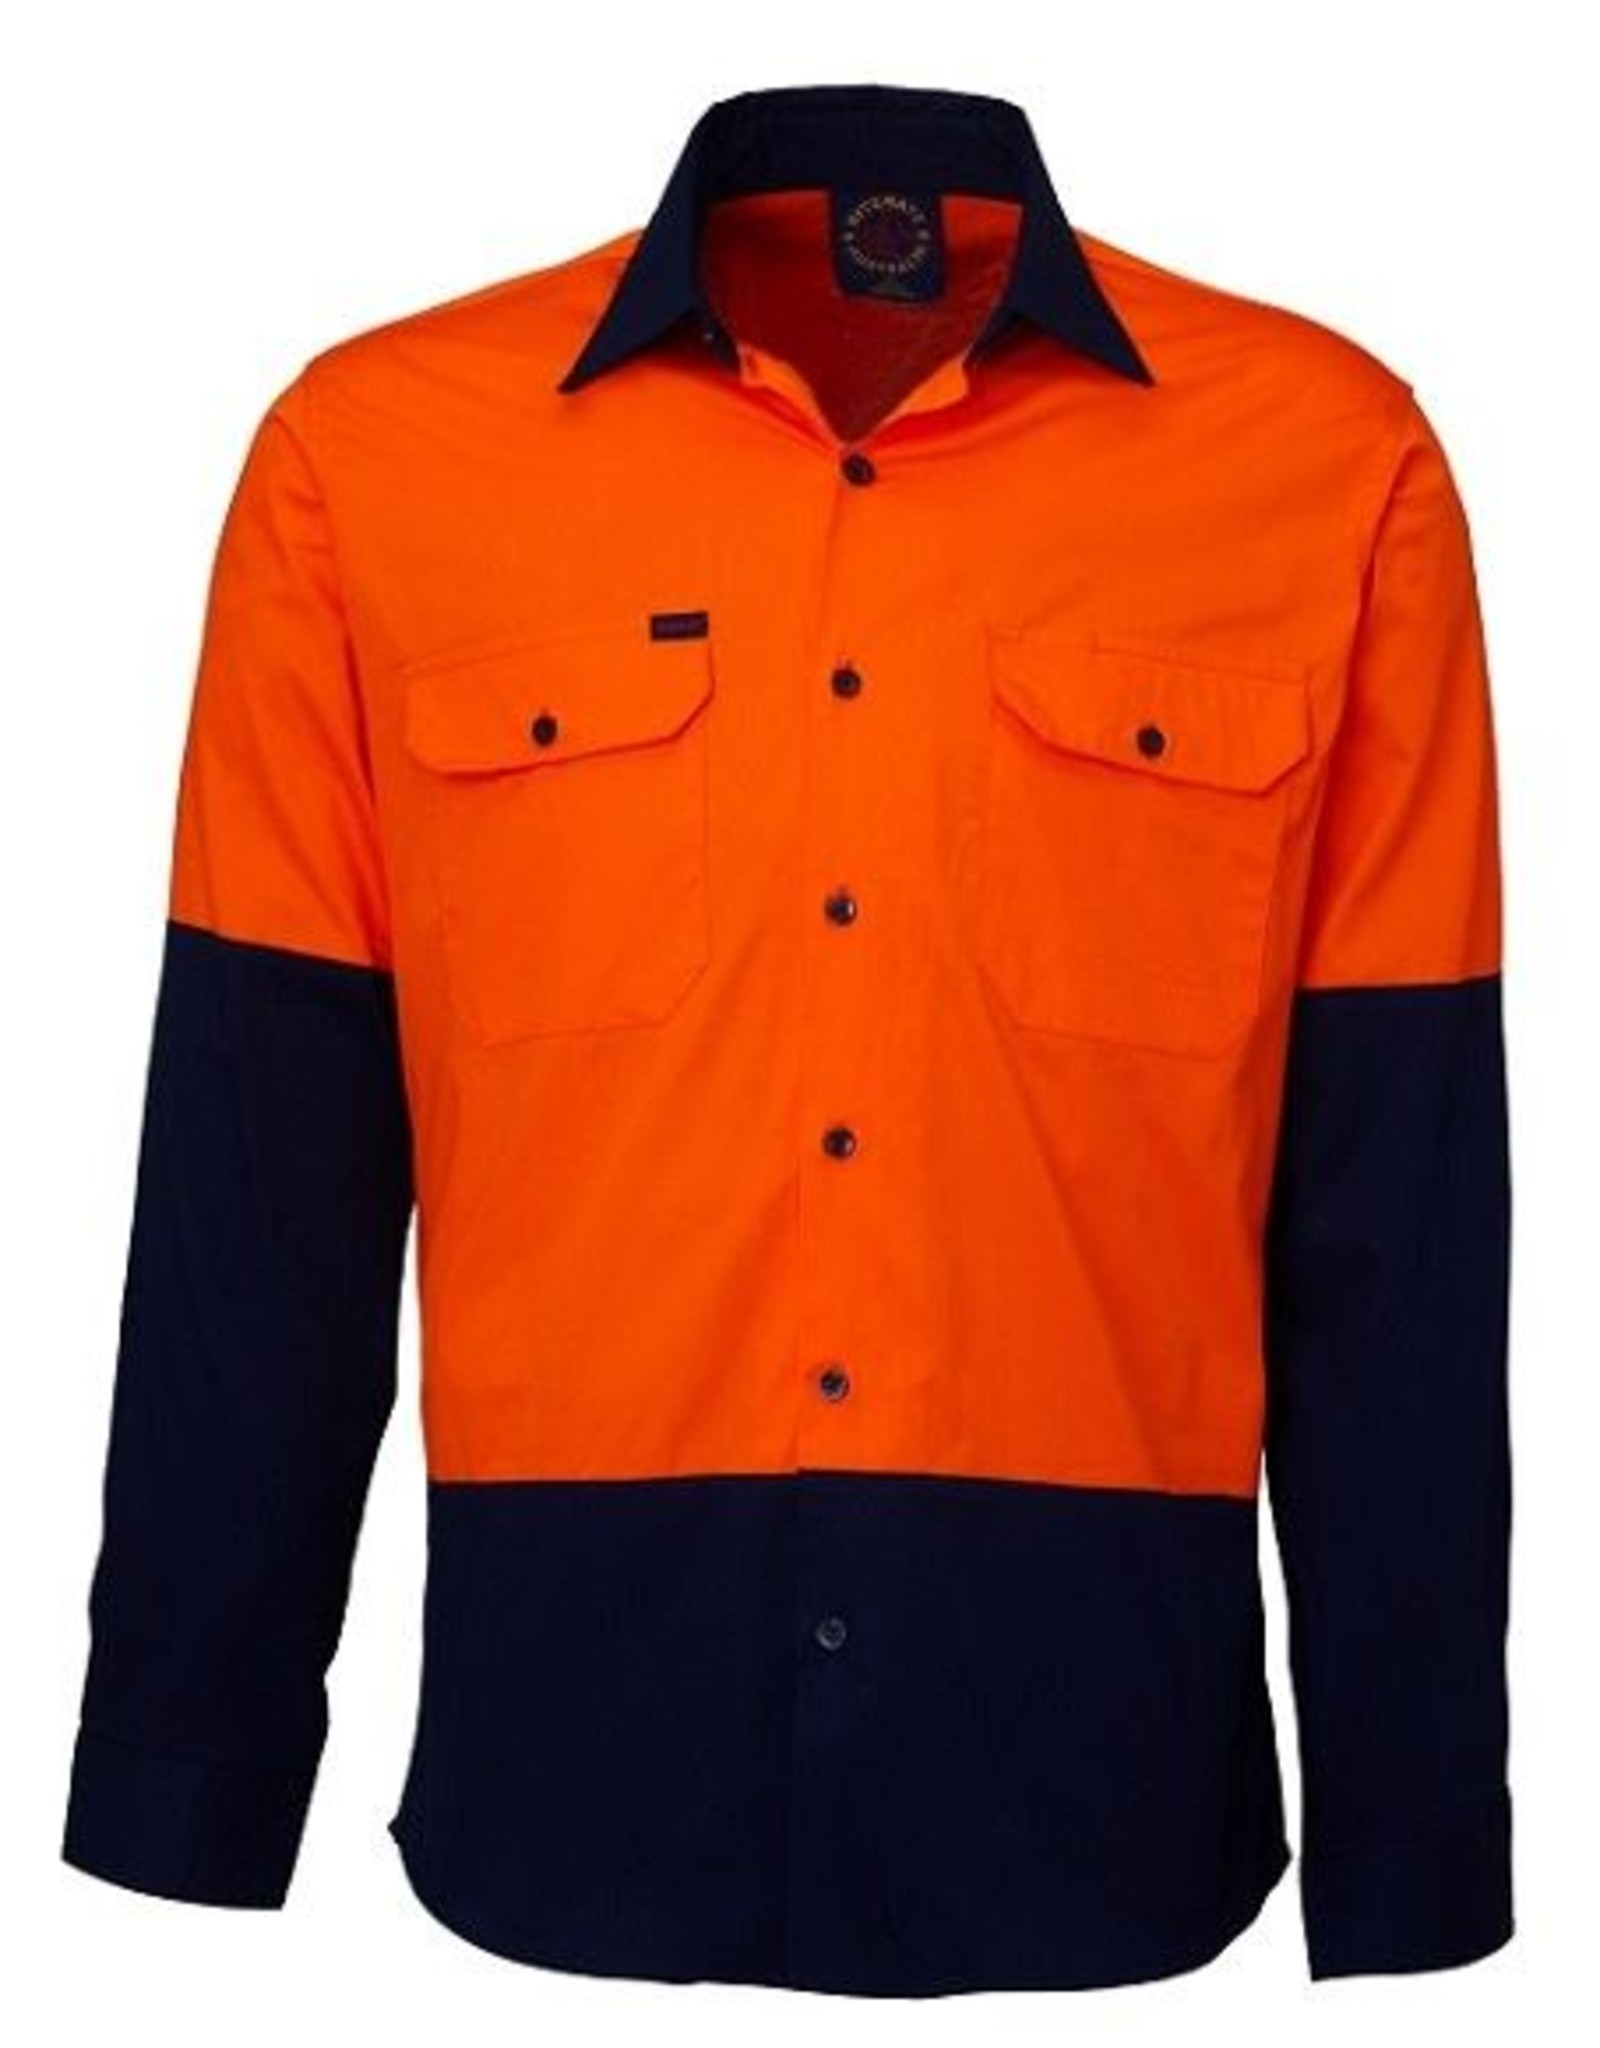 Ritemate Ritemate RM107V2 2 Tone Light Weight Vented Hi Vis LS Shirt